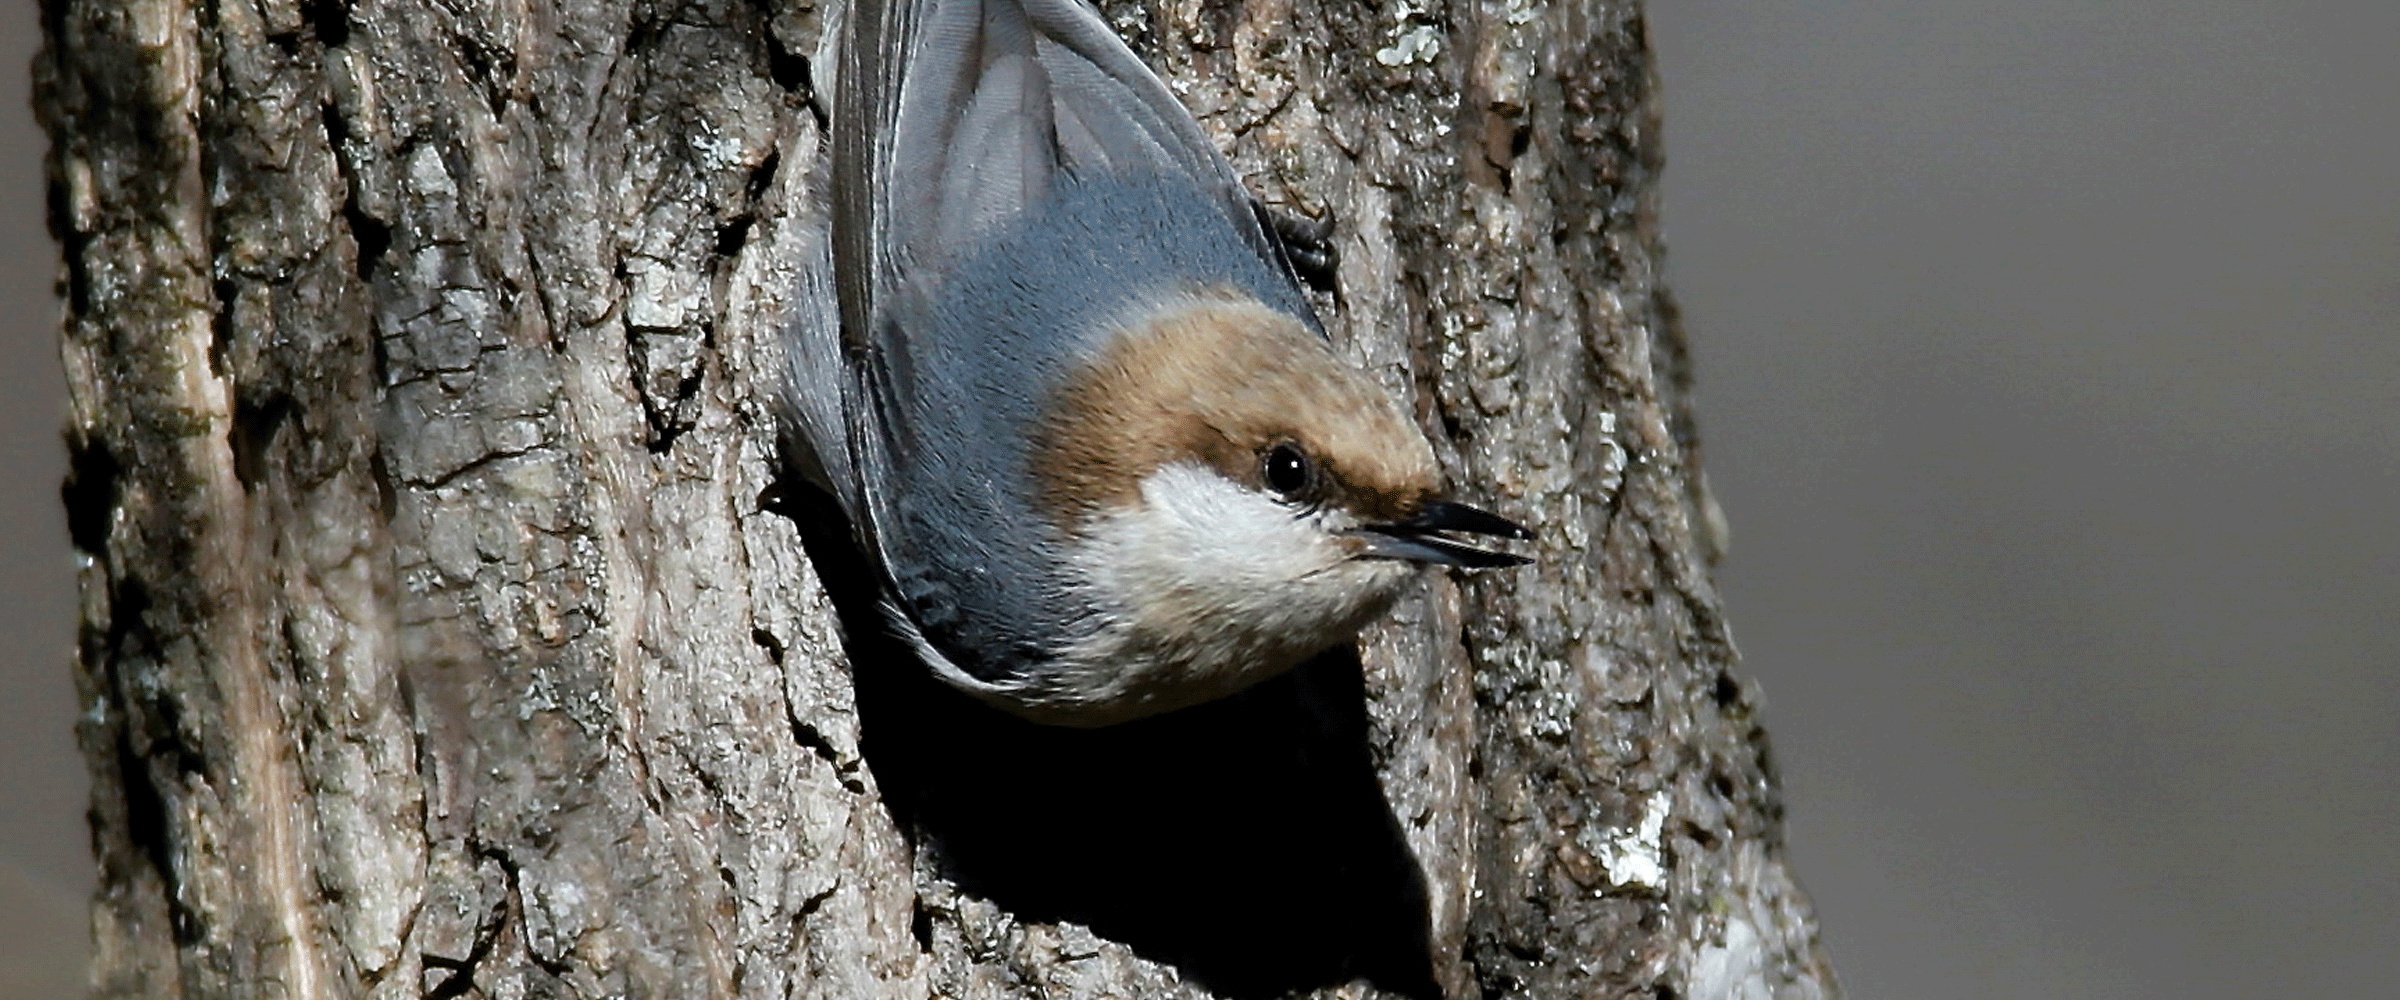 GBBC_14471_Brownheaded_Nuthatch_Connie_Pinson_Monroe_GA2014_Overall_KK